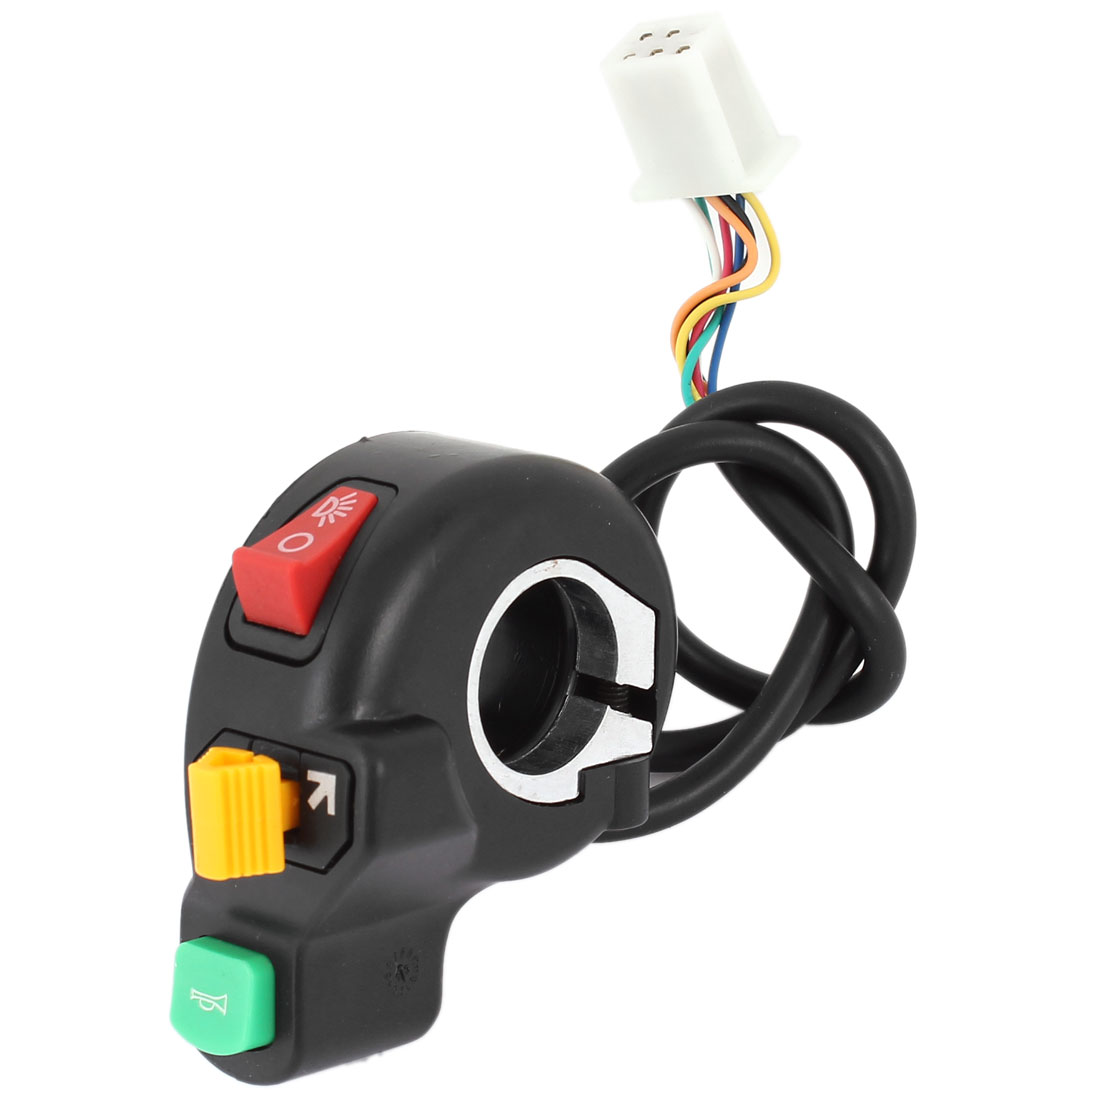 Electric Bike Cycle Plastic Headlight Turning Light Horn Master Plastic Switch Black